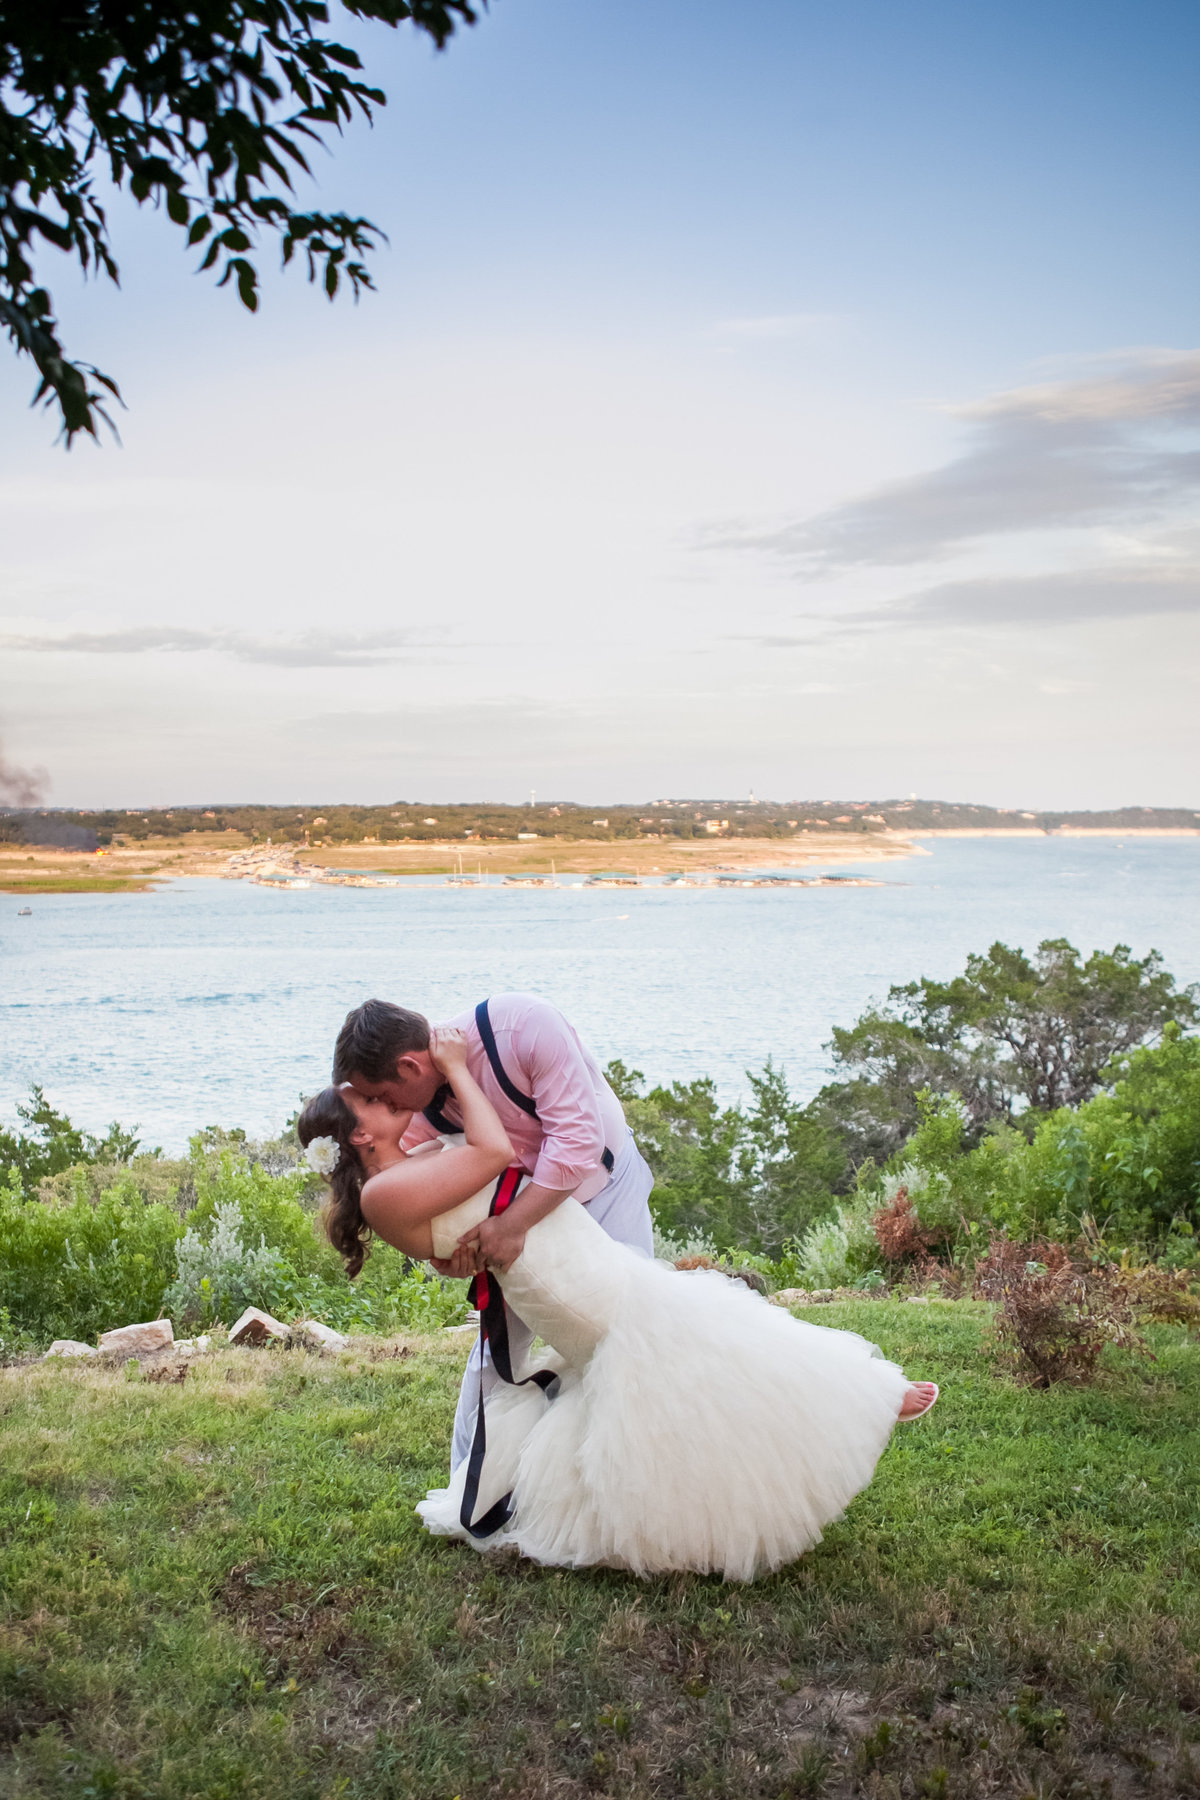 Nature's Point, Austin Family Photographer, Tiffany Chapman Photography bride and groom portrait photo